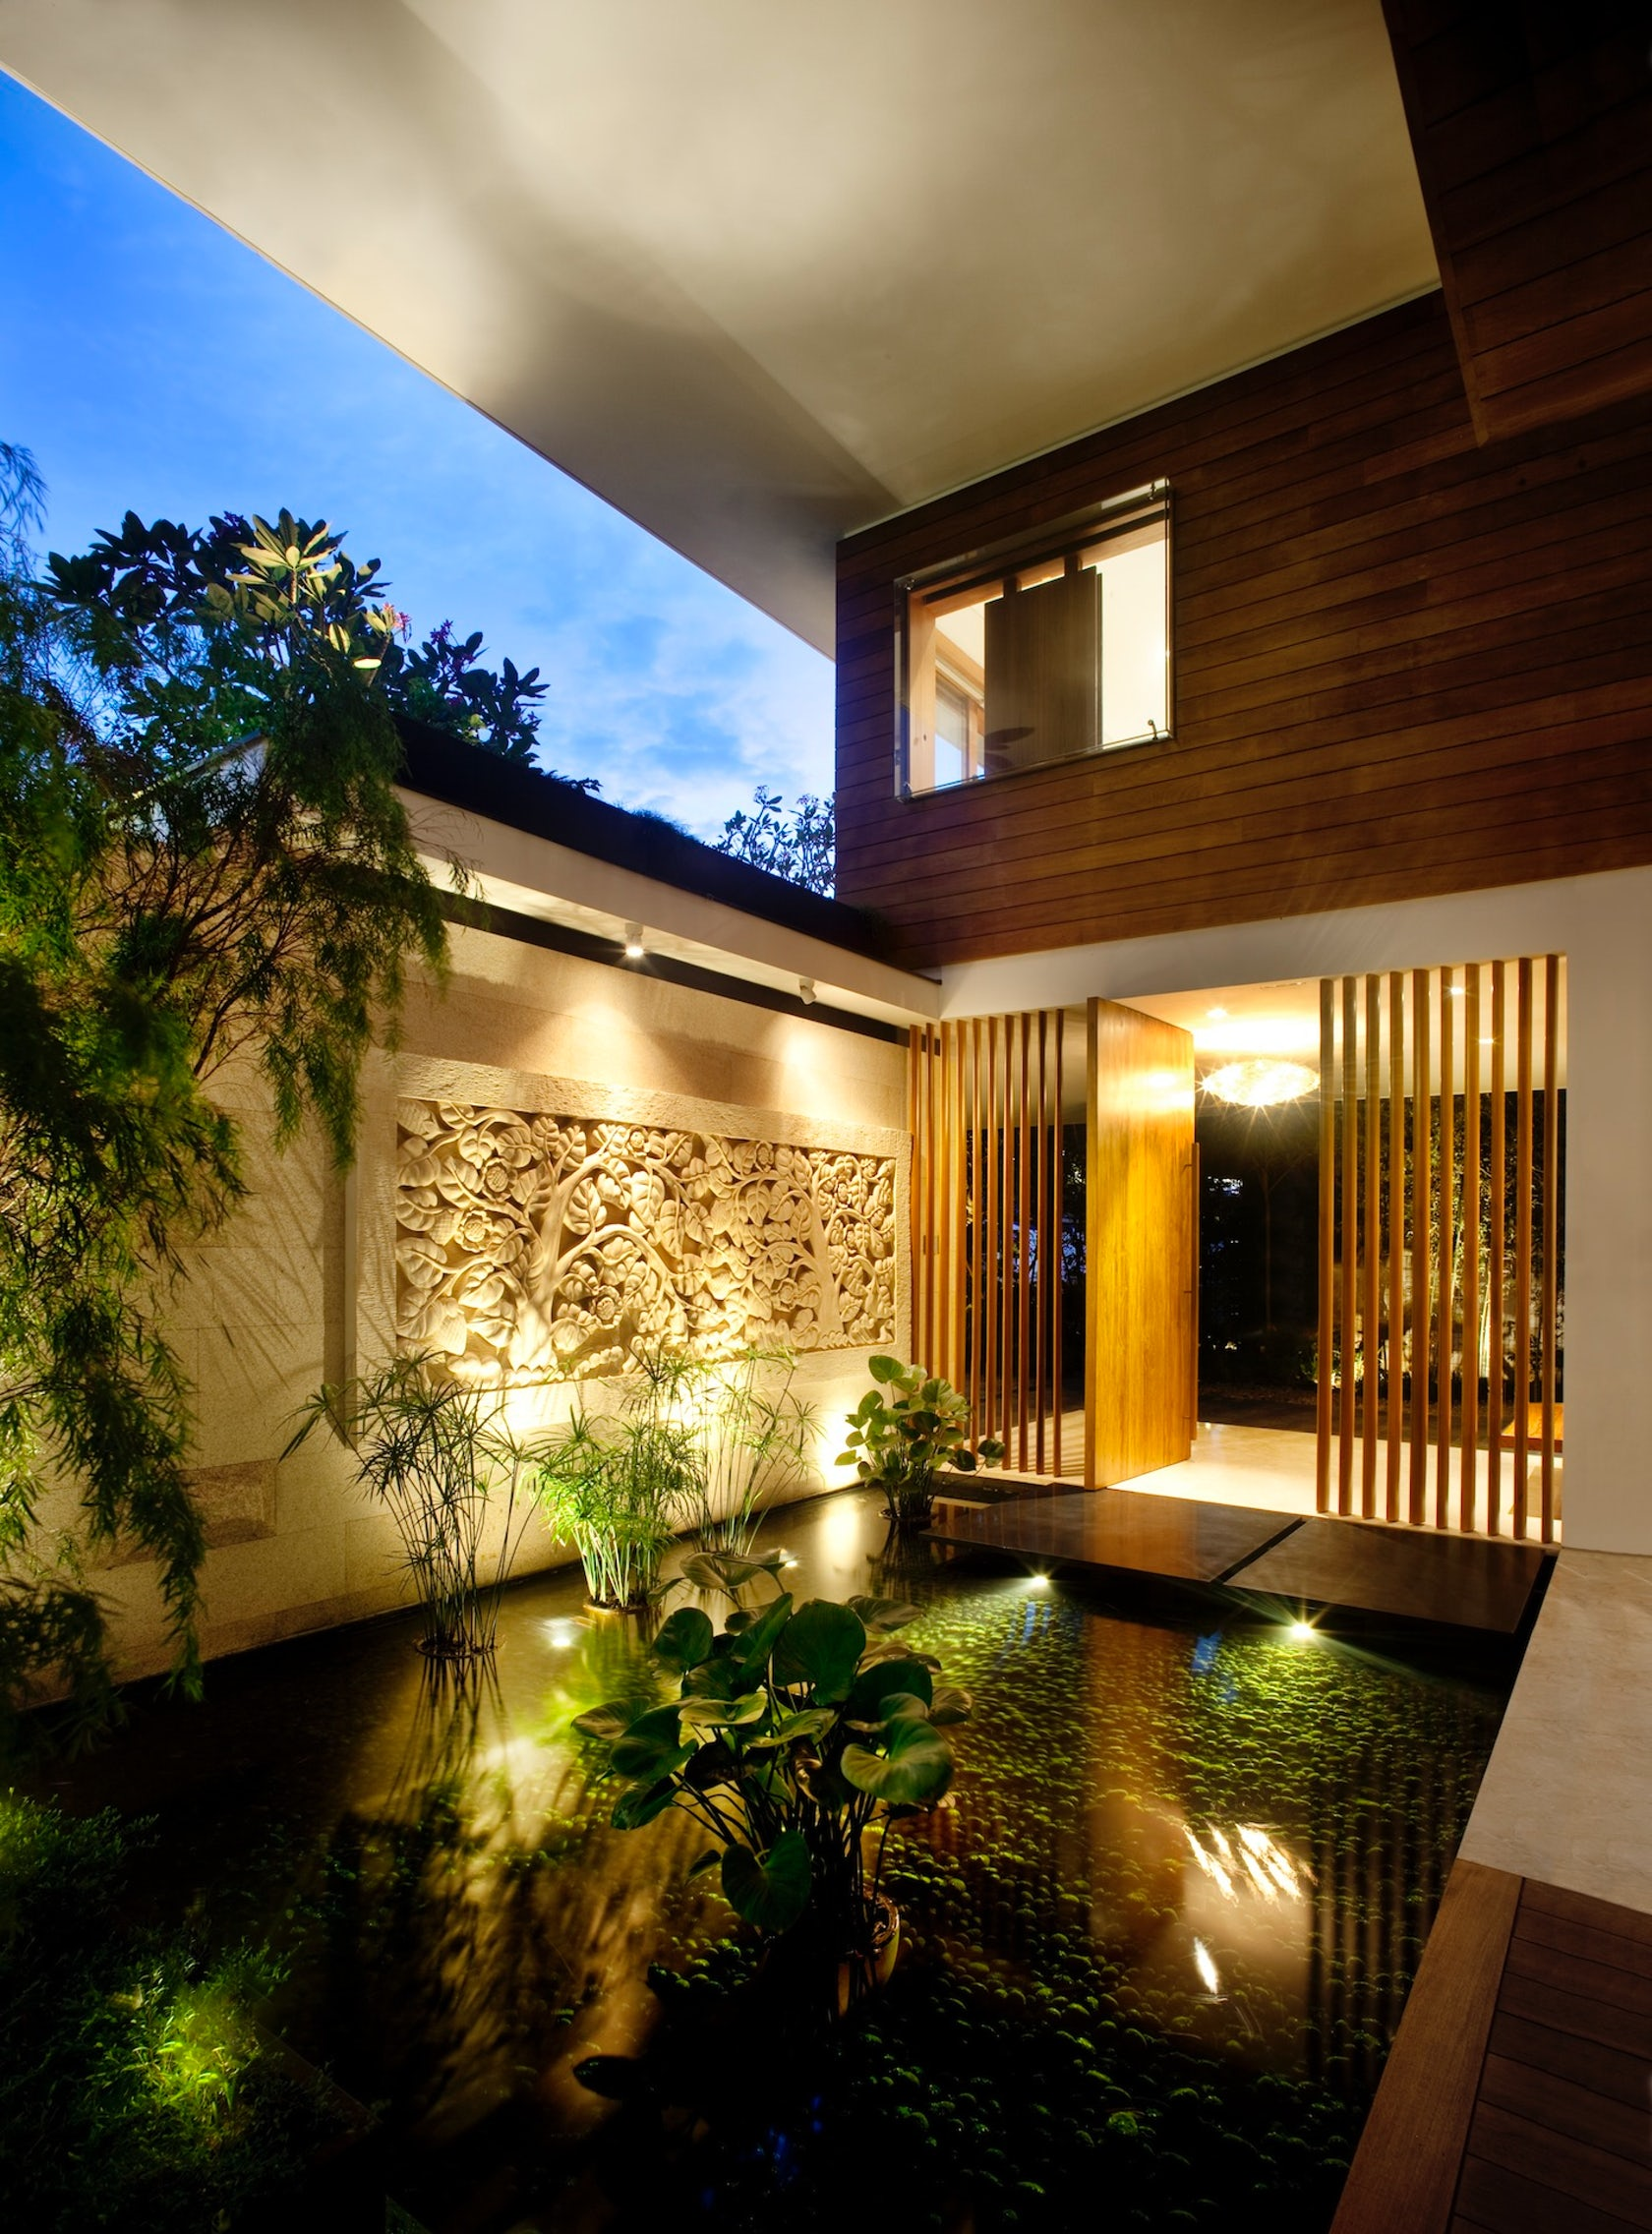 Sky garden house architizer for Willow house singapore